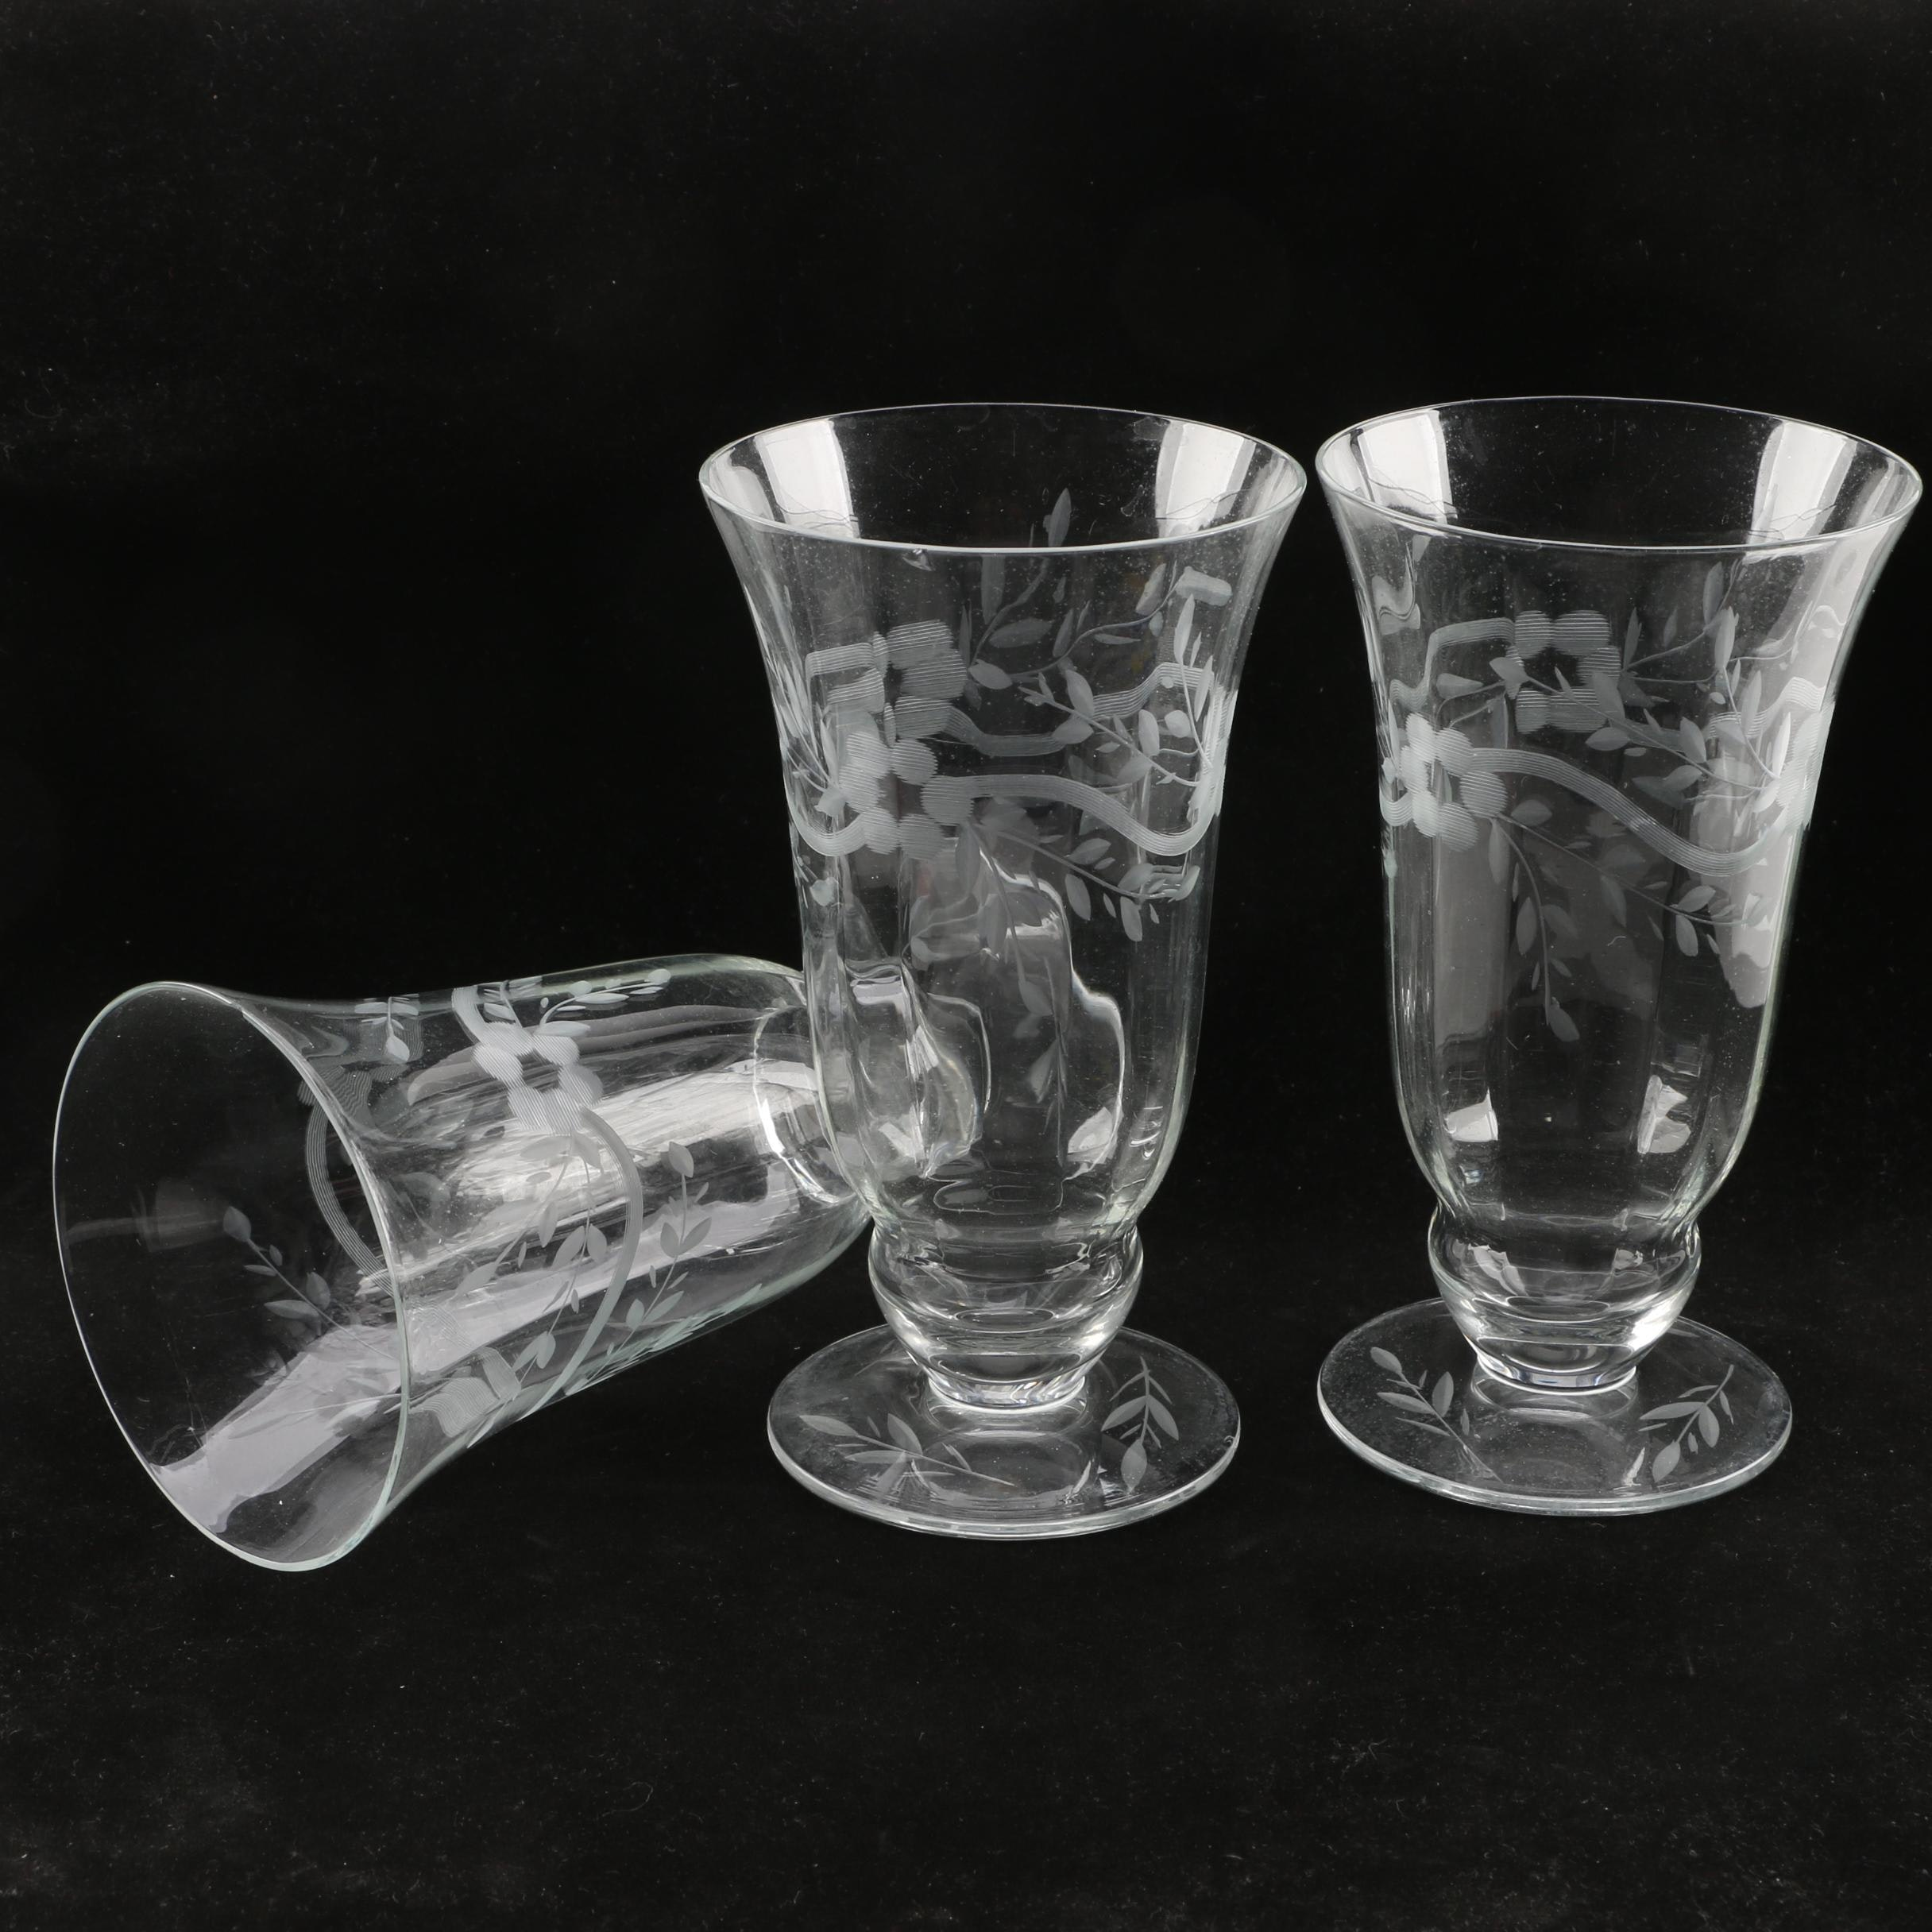 Collection of Three Etched Parfait Glasses